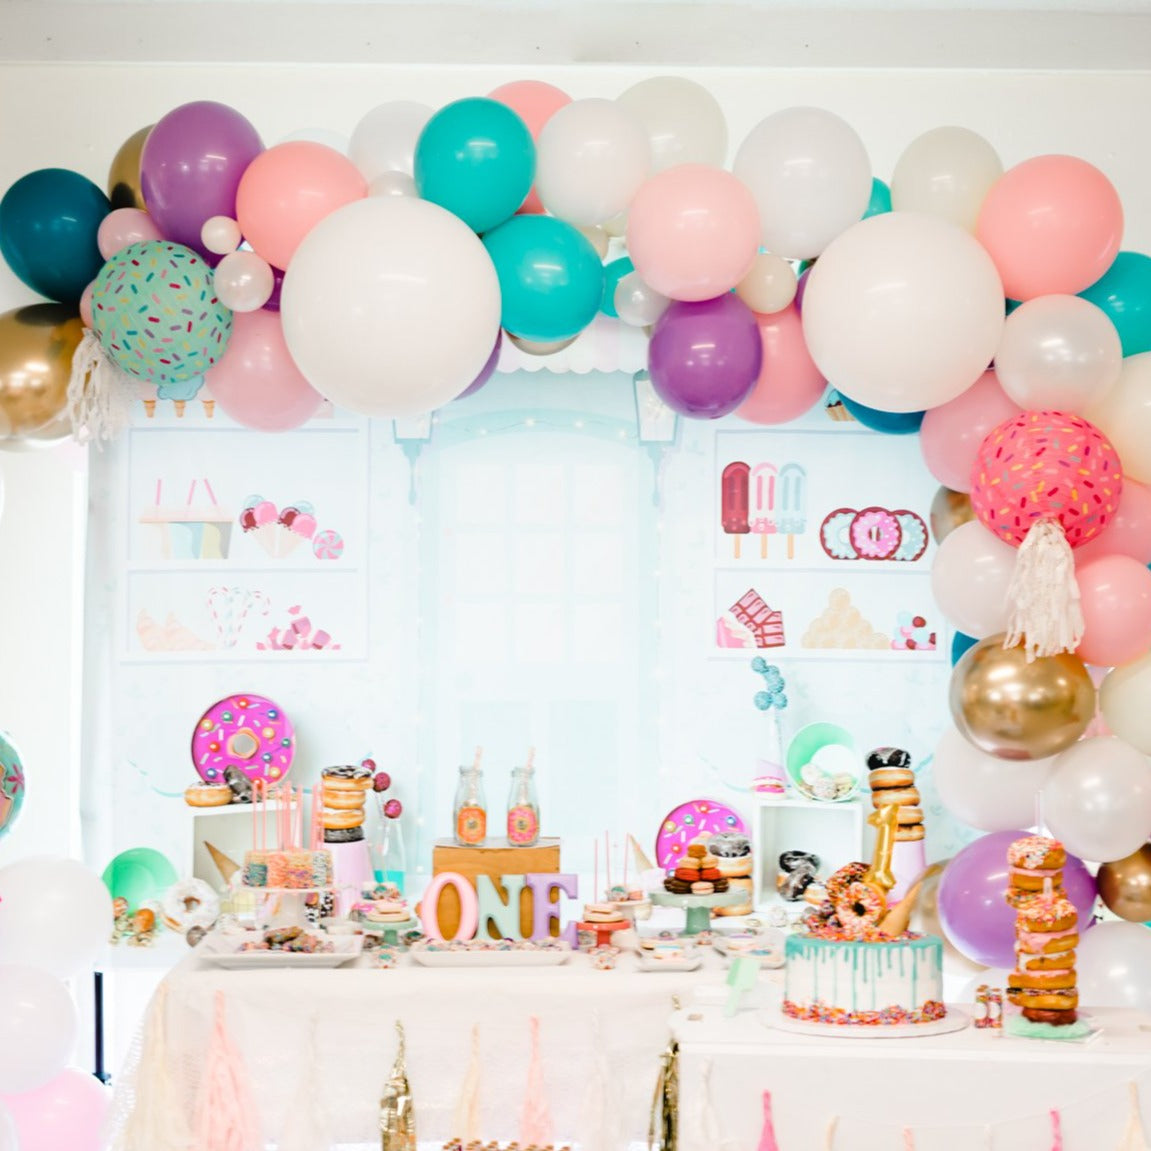 DIY Donut Sprinkles Balloon Garland Arch